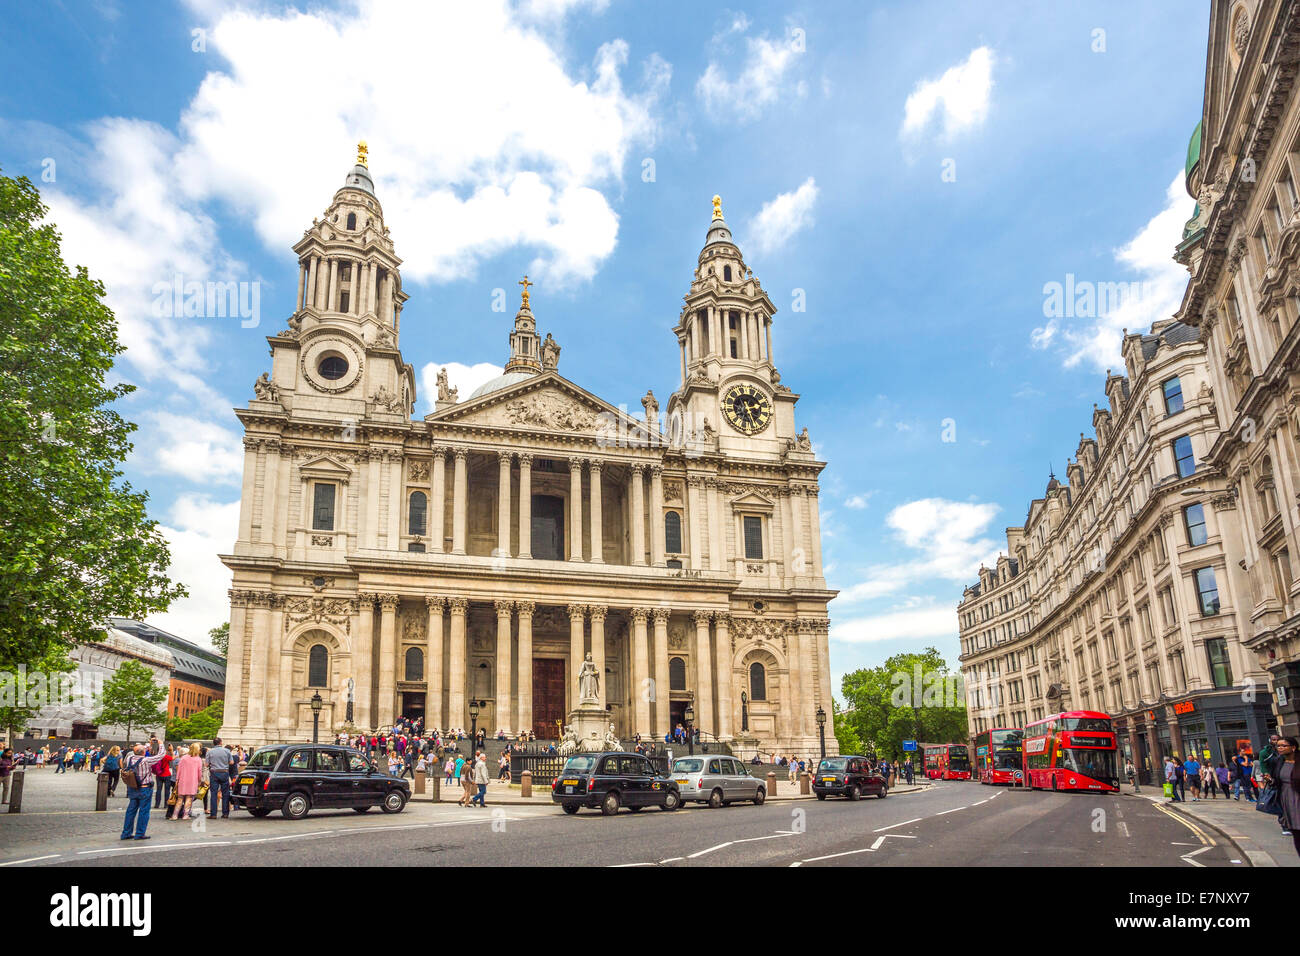 Avenue, Building, Cathedral, City, London, England, St. Paul, UK, architecture, history, religion, tourism, travel - Stock Image